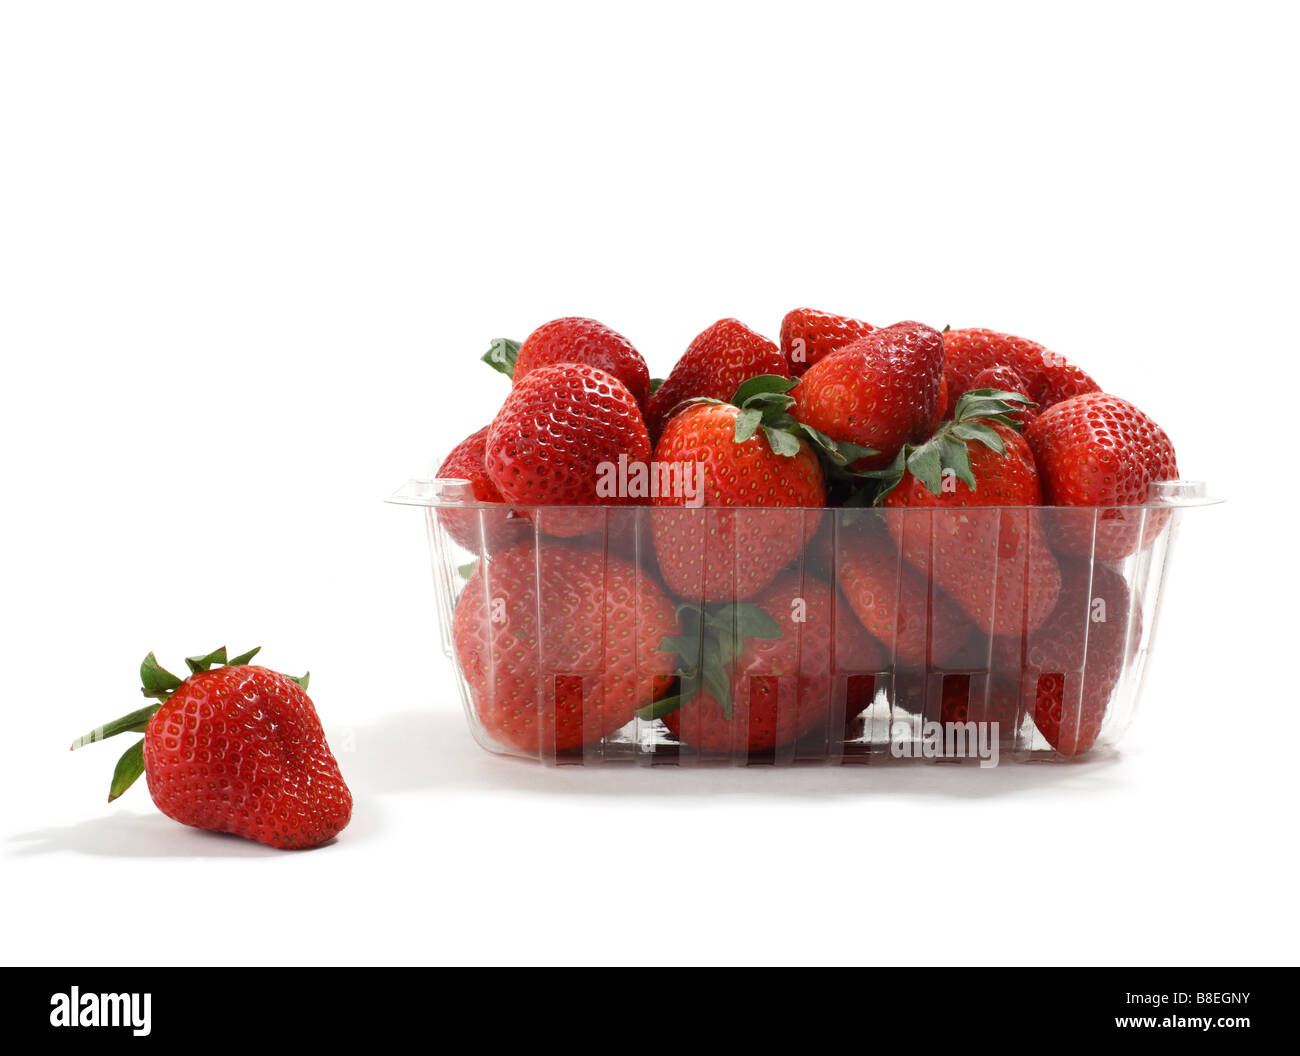 Clear Plastic Basket of Organic Strawberries one in foreground - Stock Image